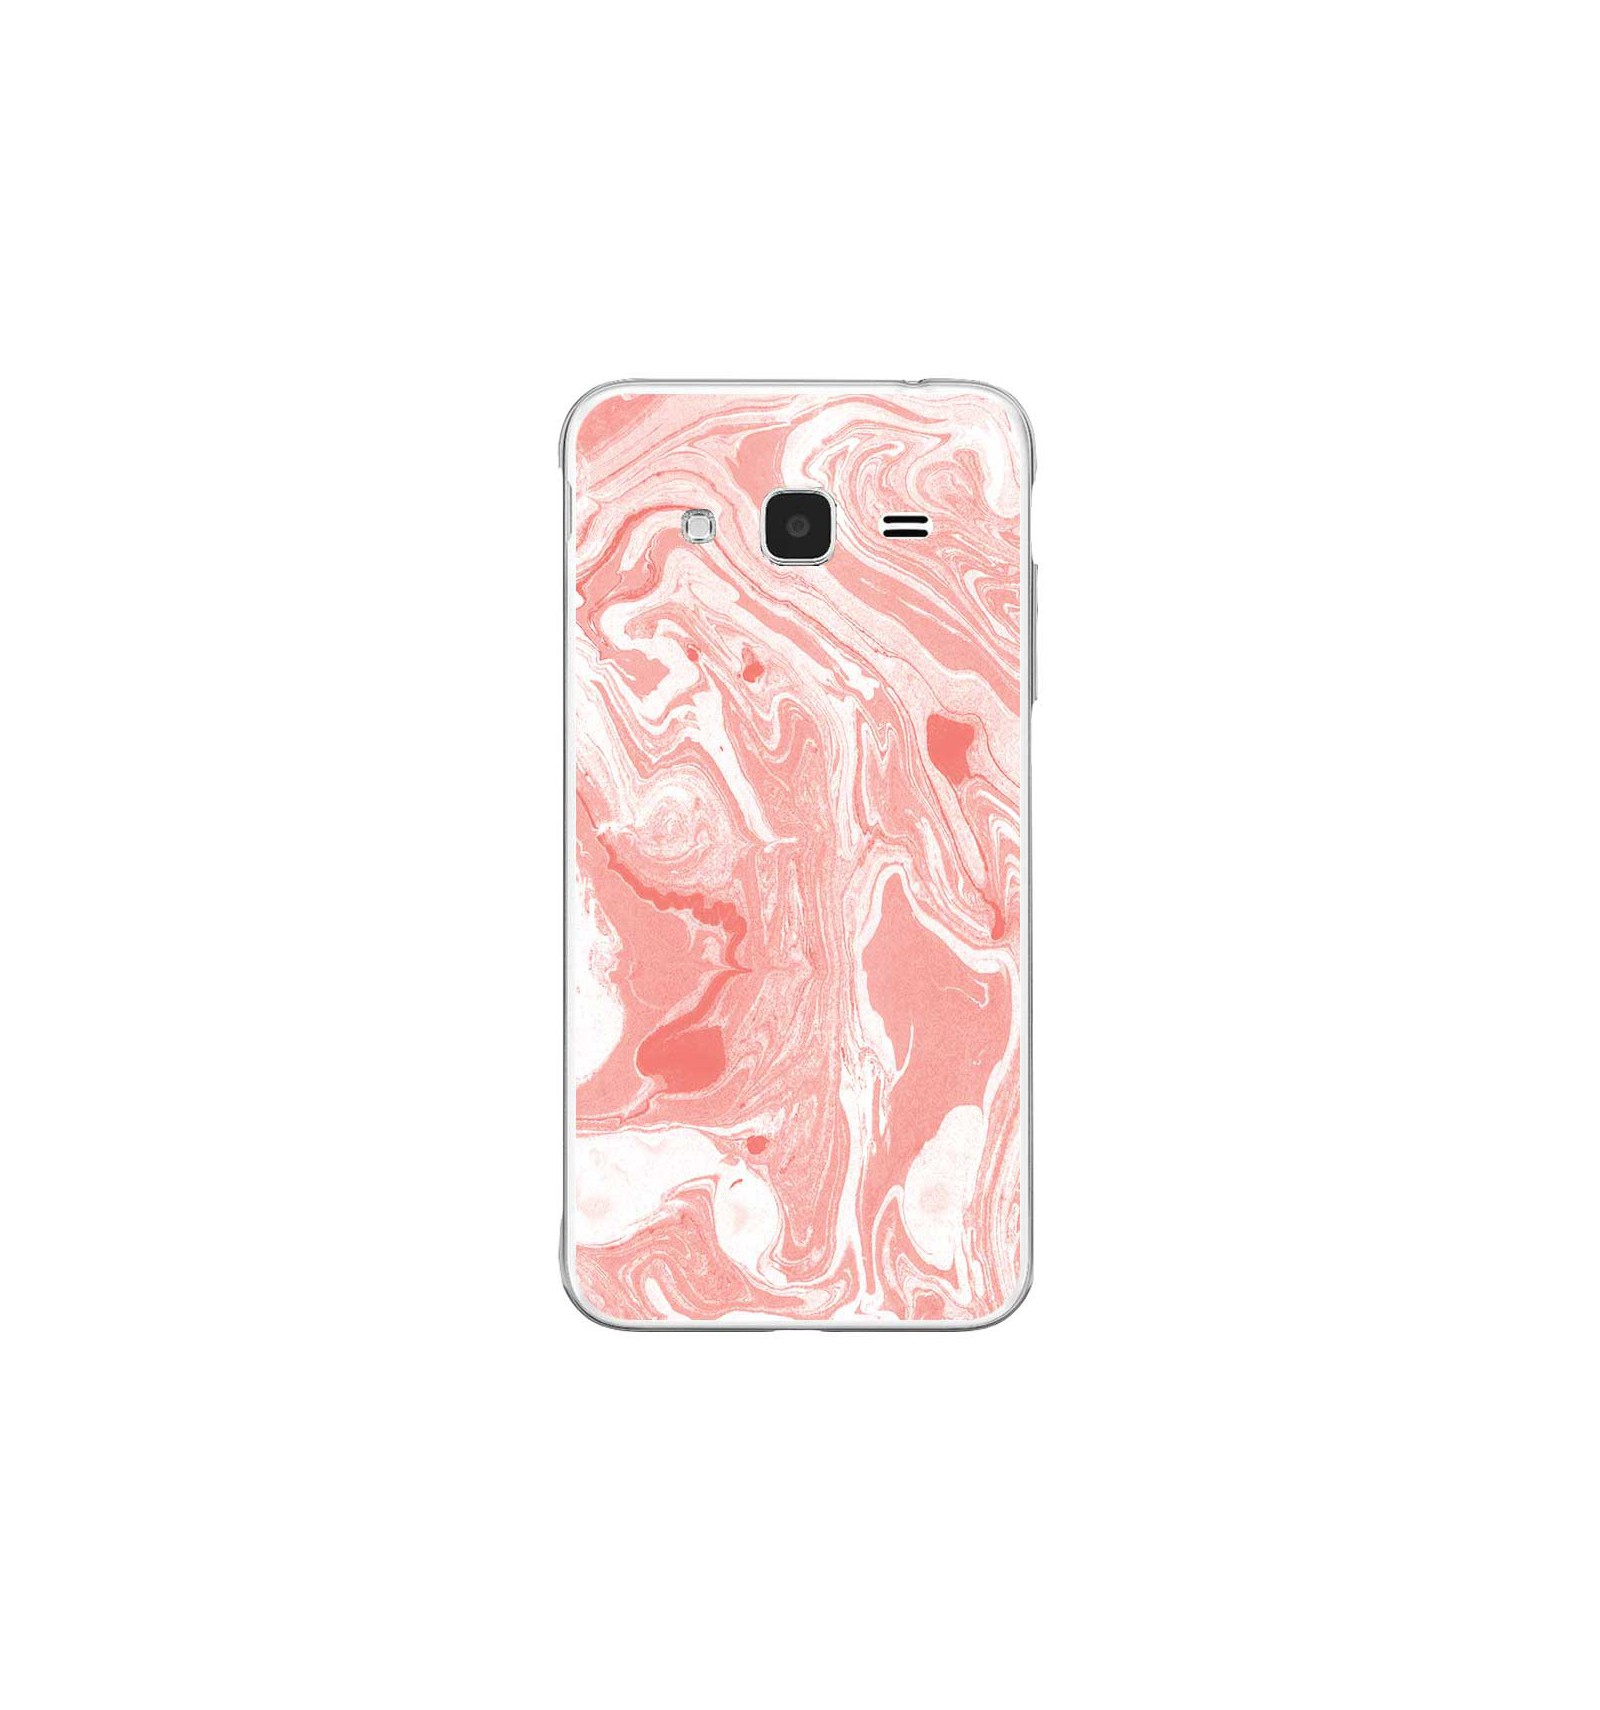 coque silicone rose samsung galaxy j3 2016